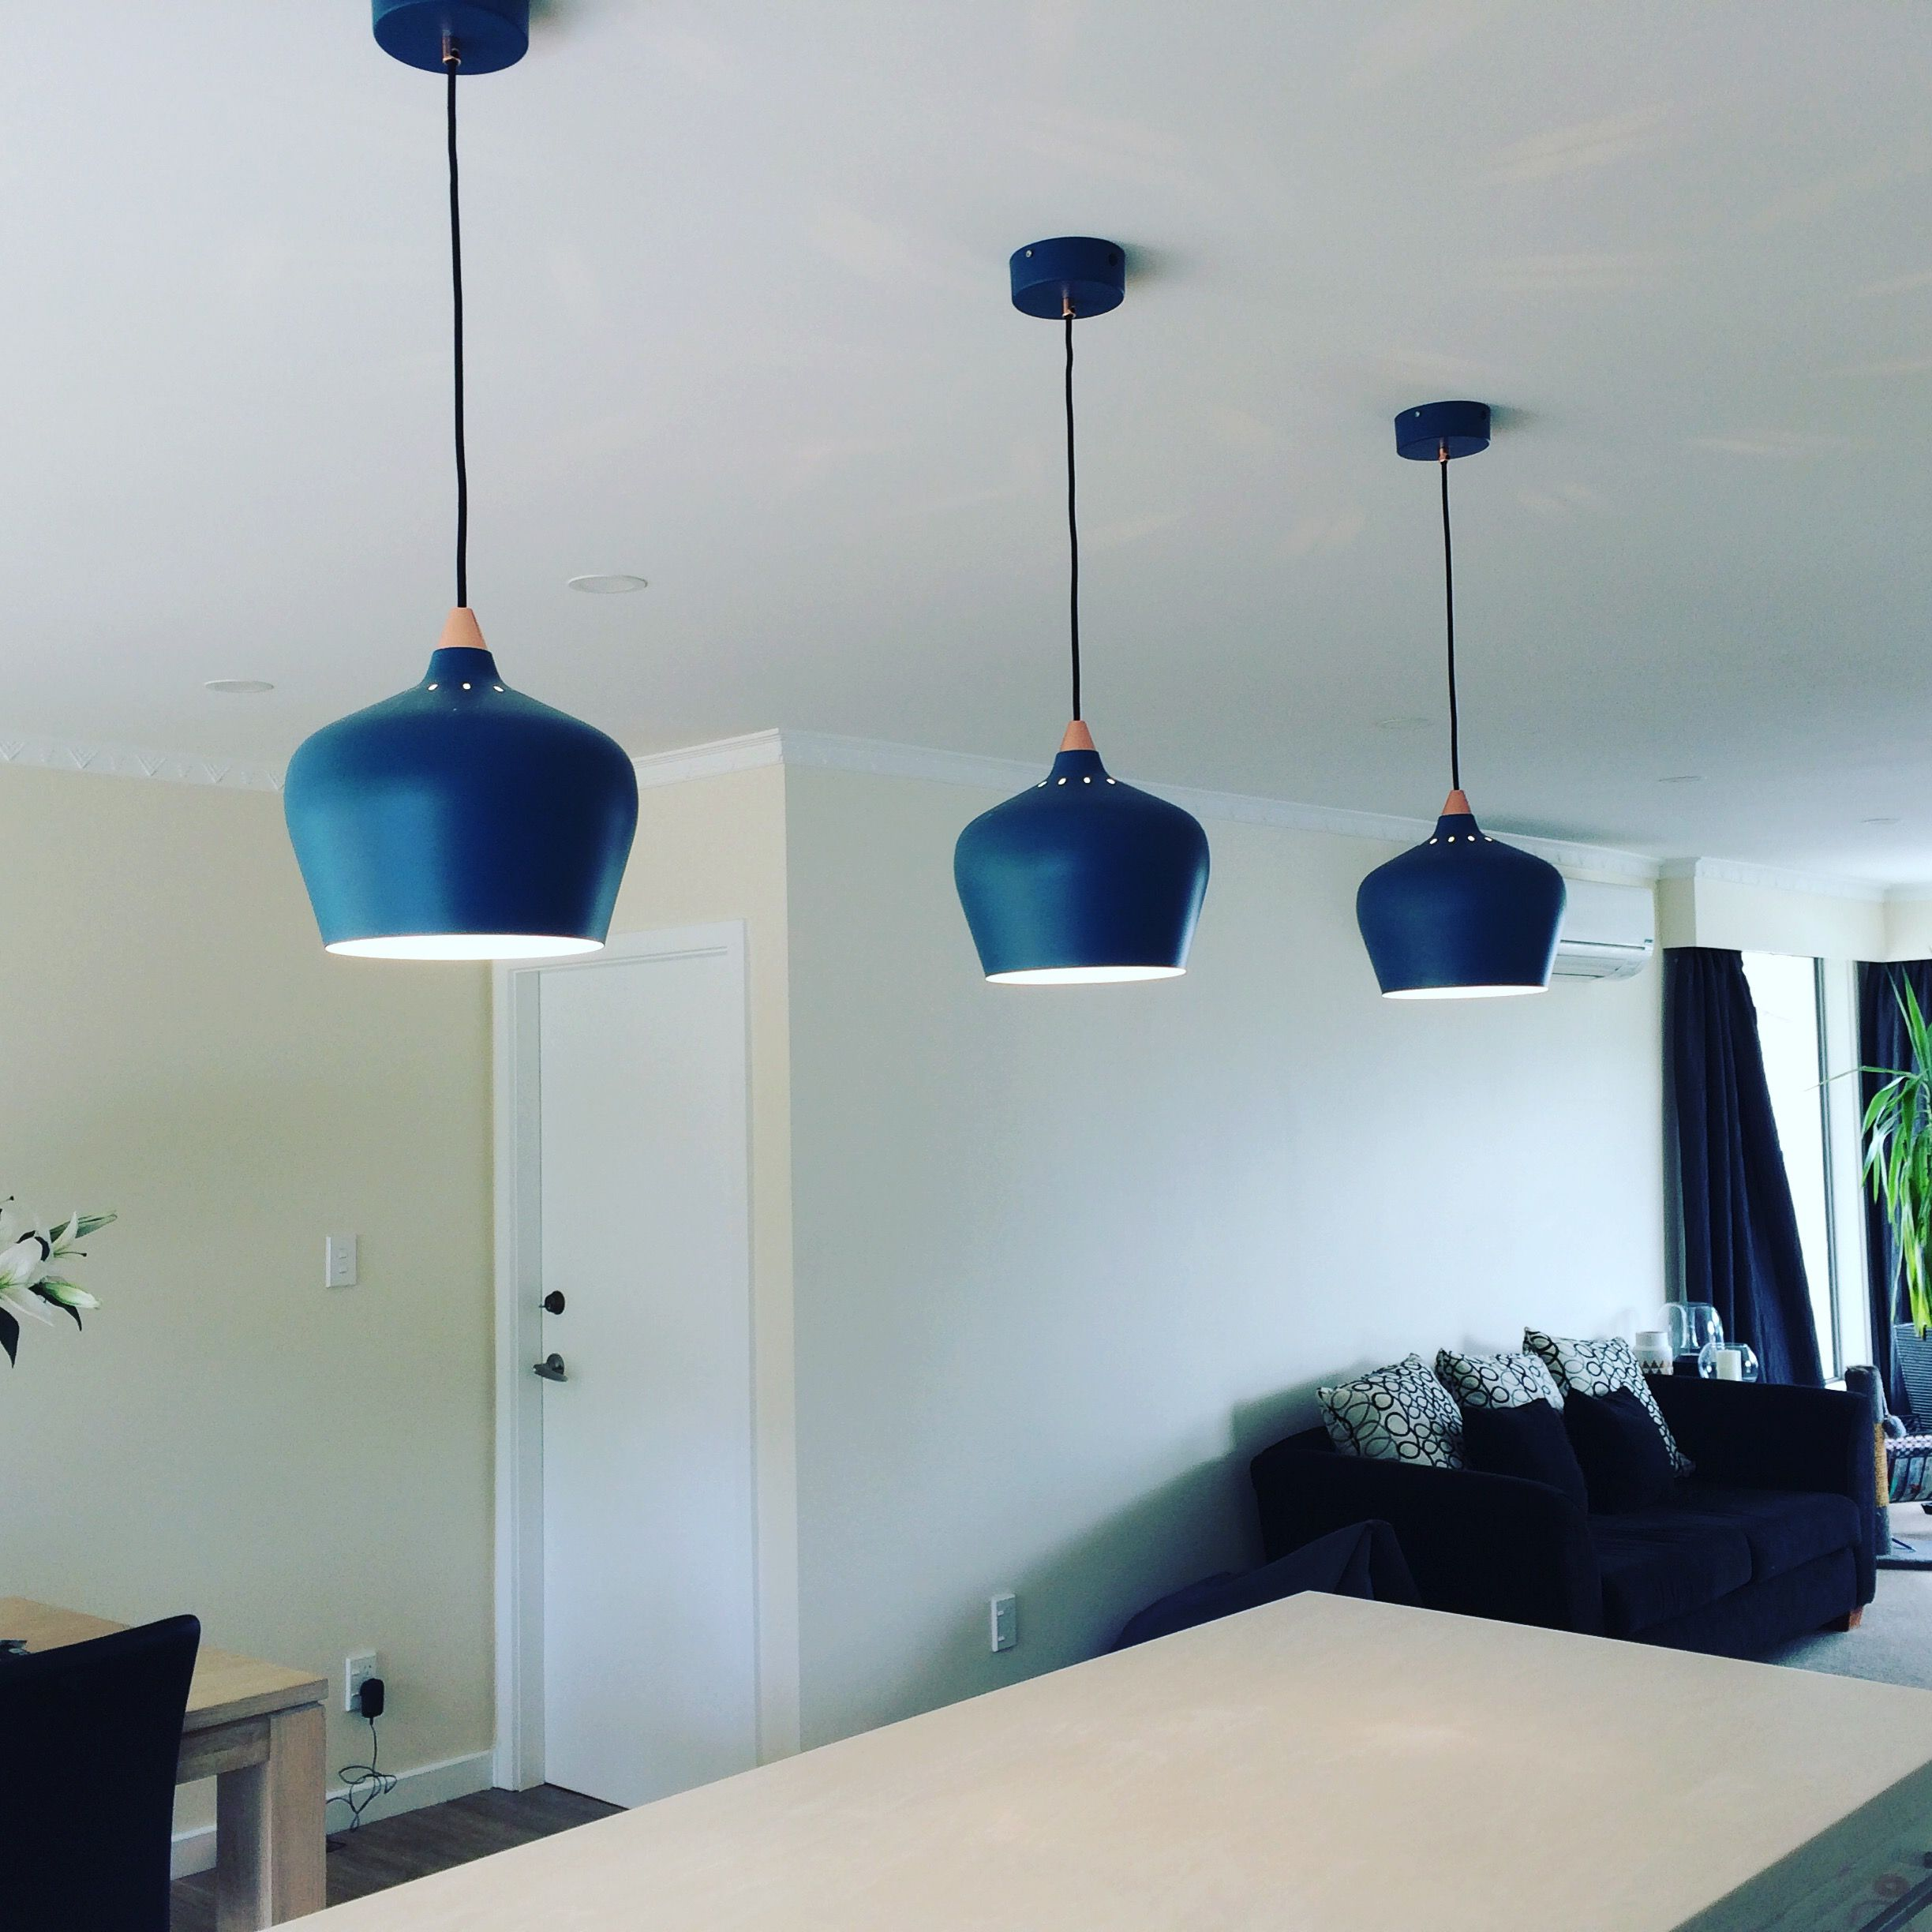 pendant lights for kitchen nz # 4